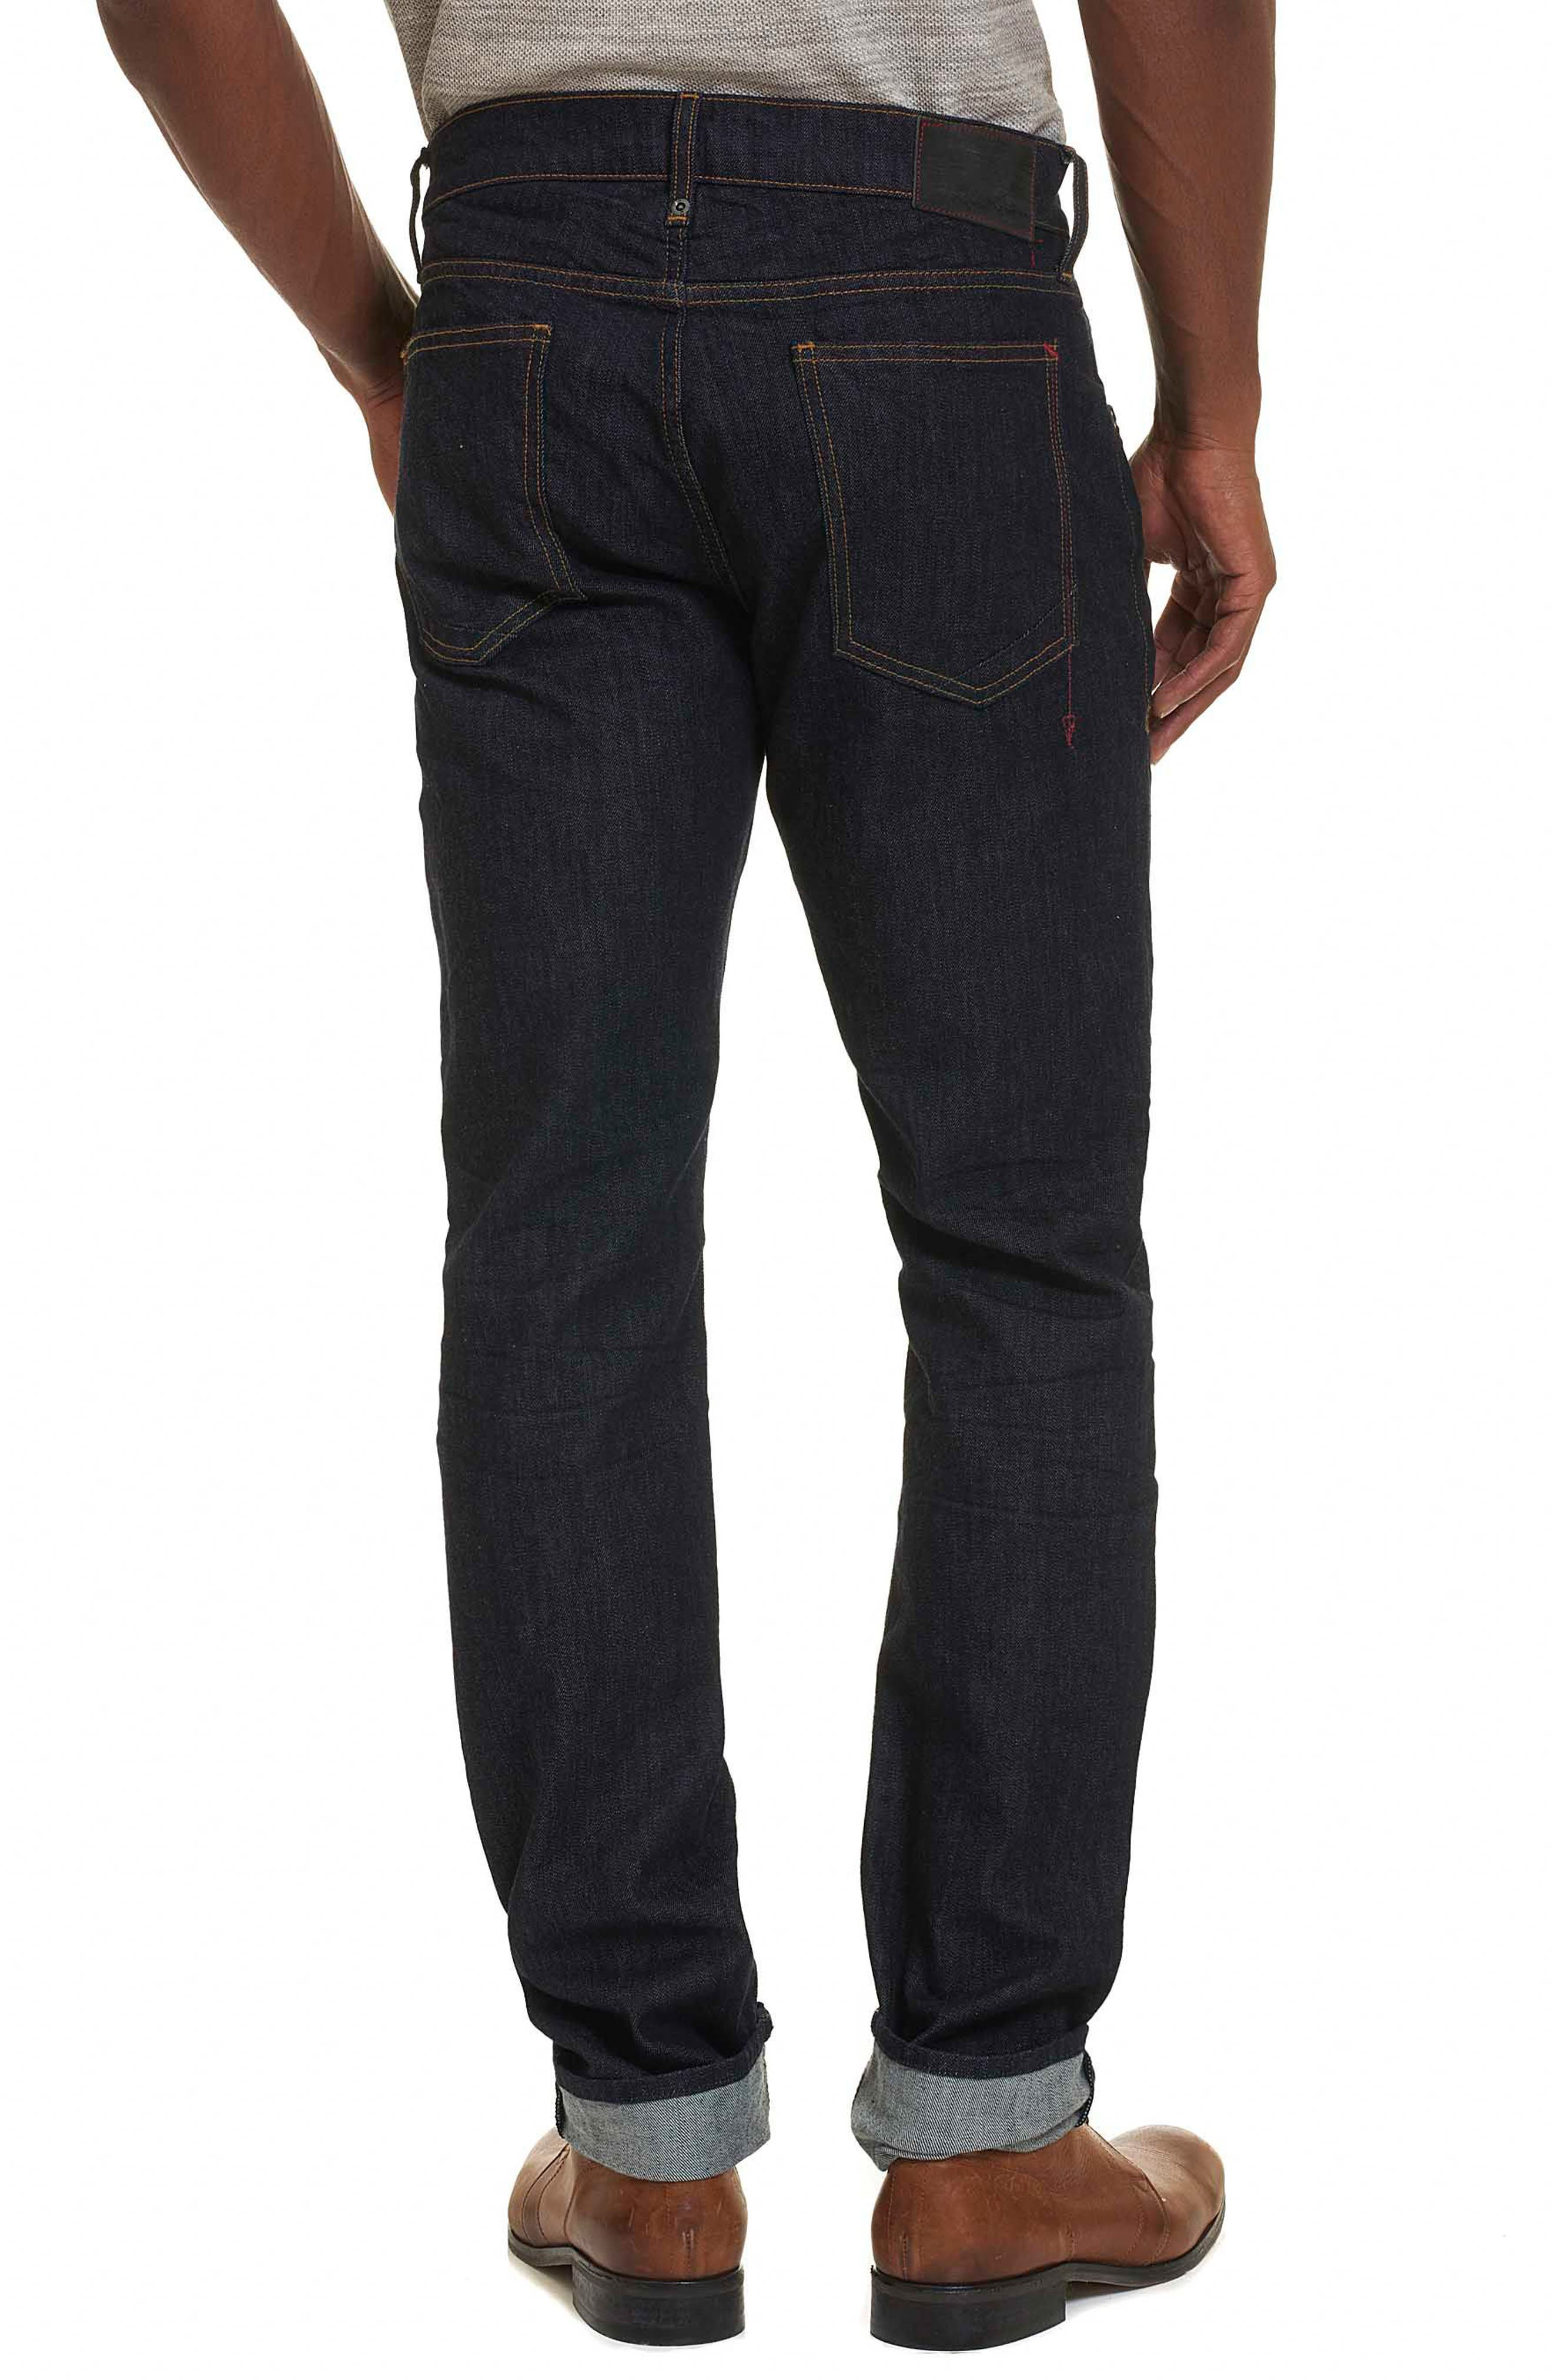 Resist Tailored Fit Jeans,                             Alternate thumbnail 2, color,                             405